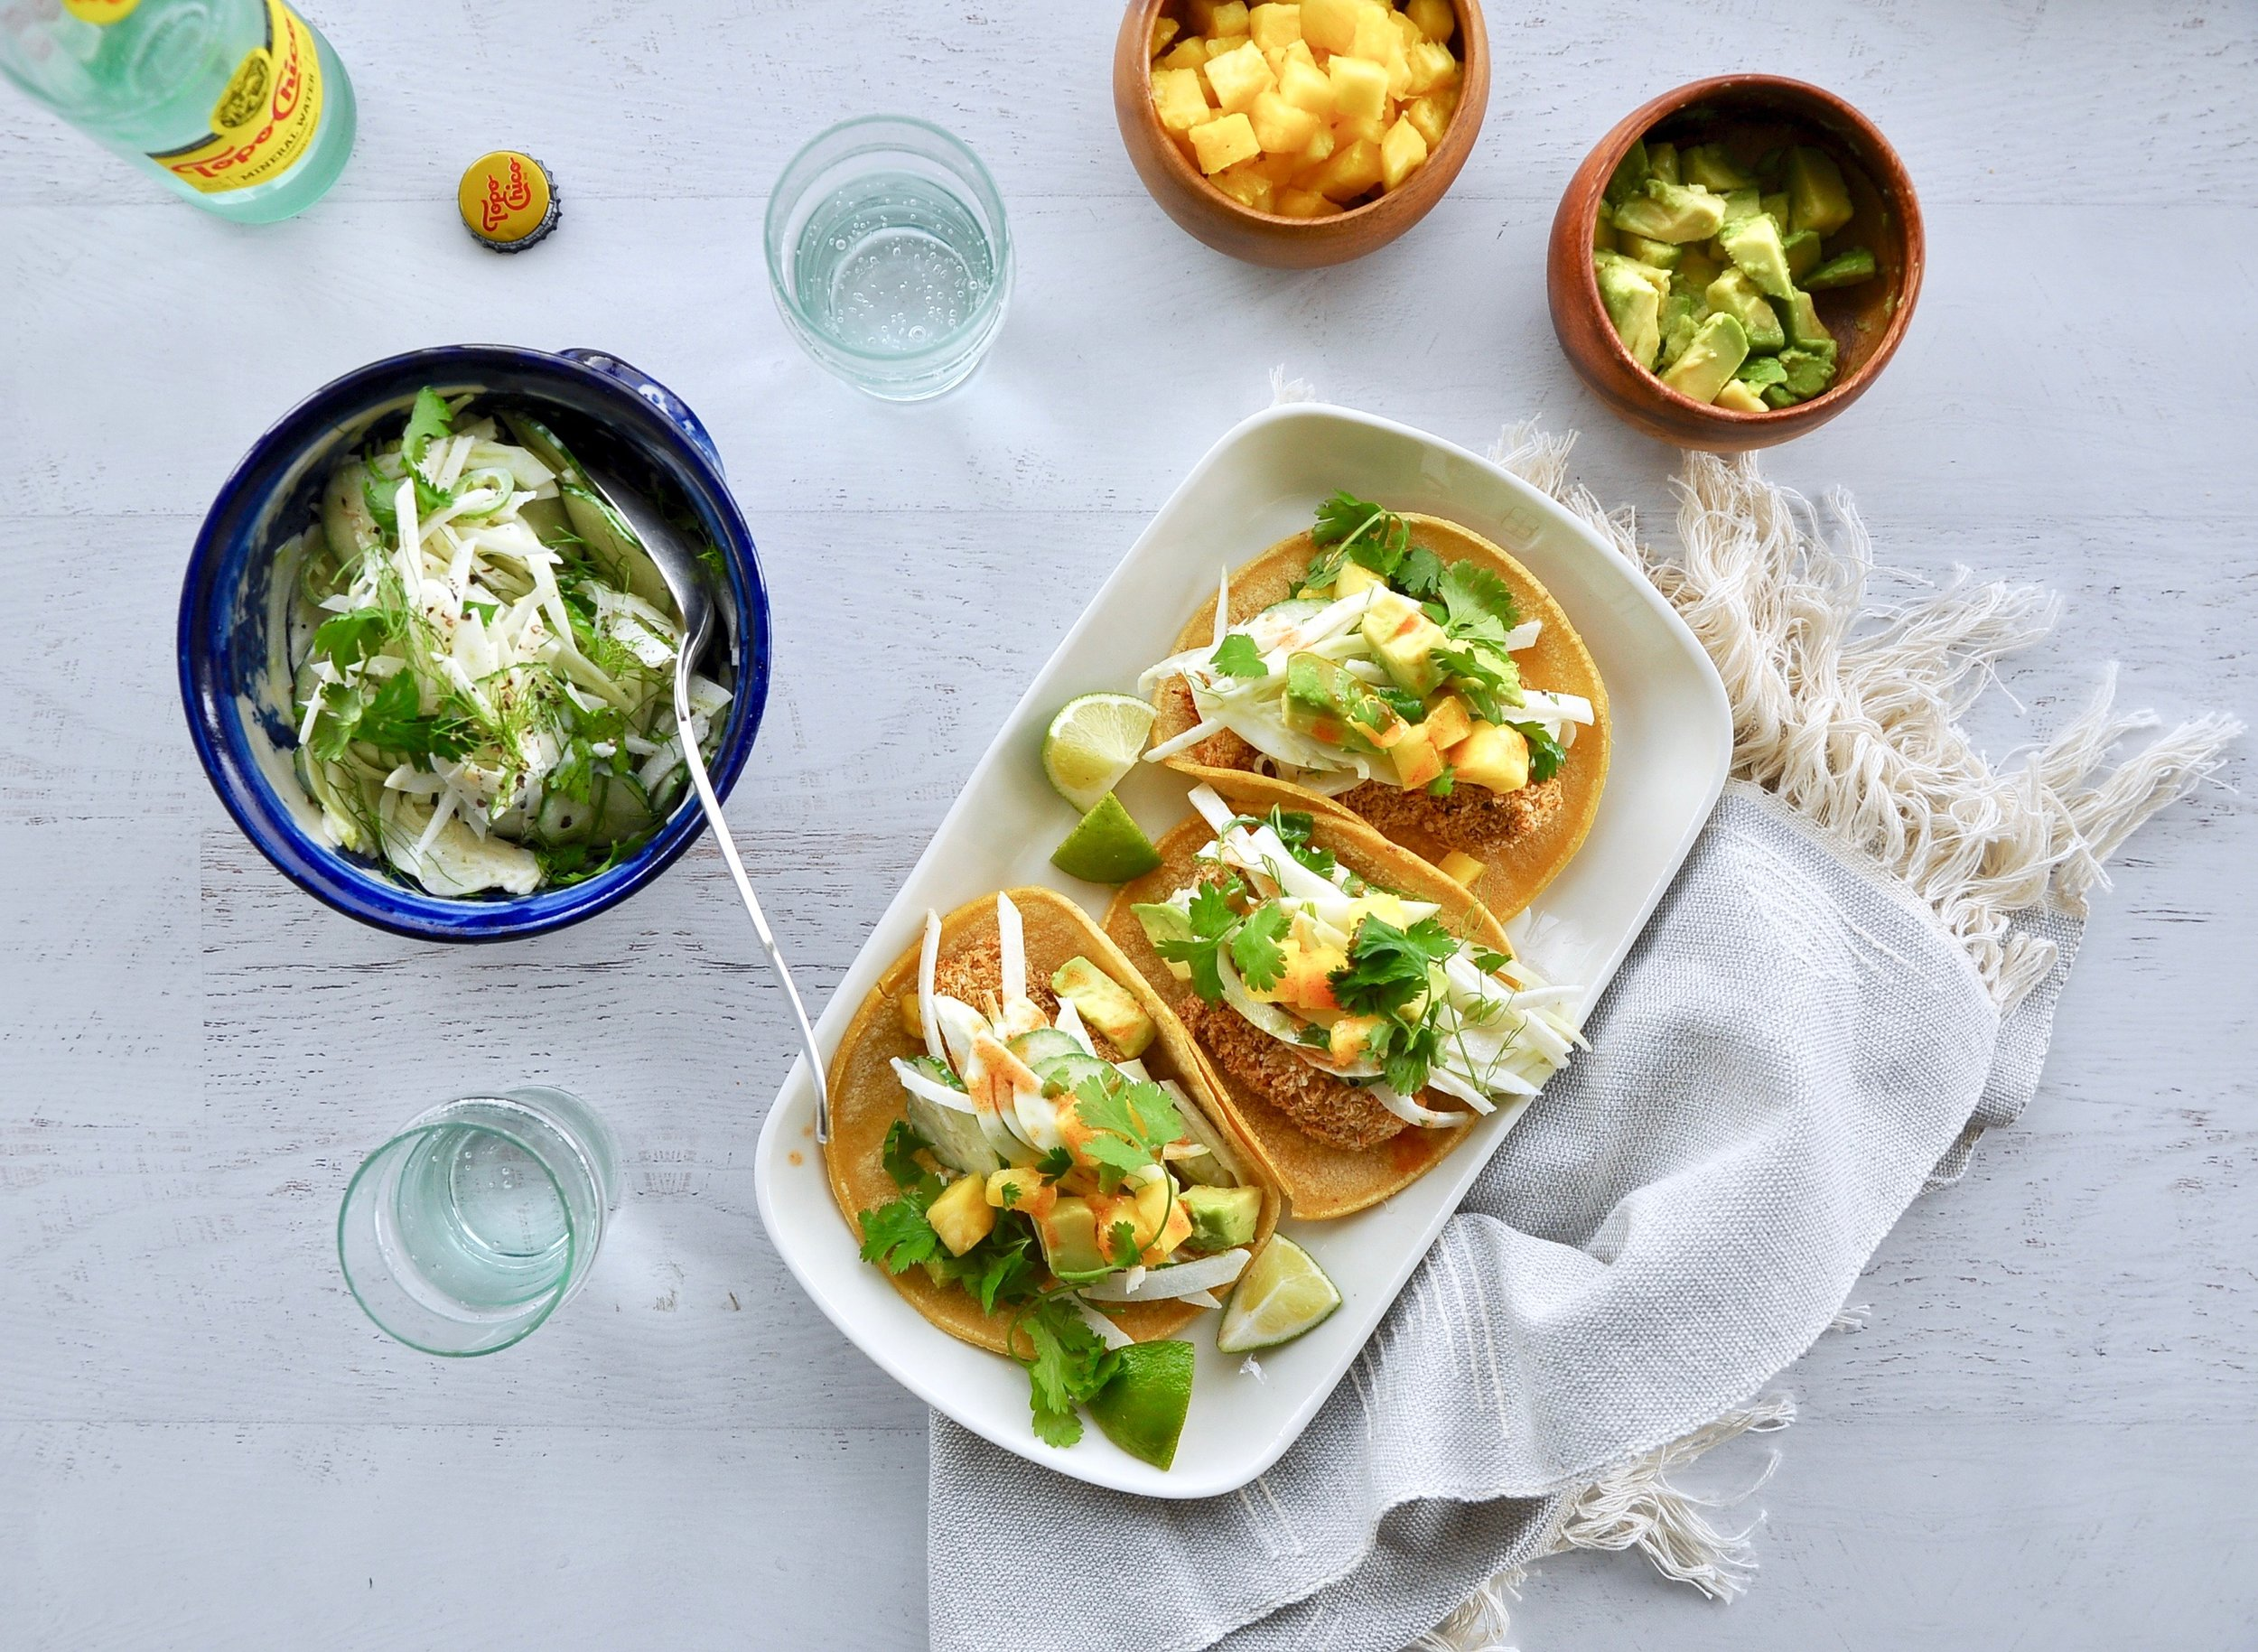 BAKED COCONUT-CRUSTED FISH TACOS WITH FENNEL-JICAMA SLAW  Private Consulting Client